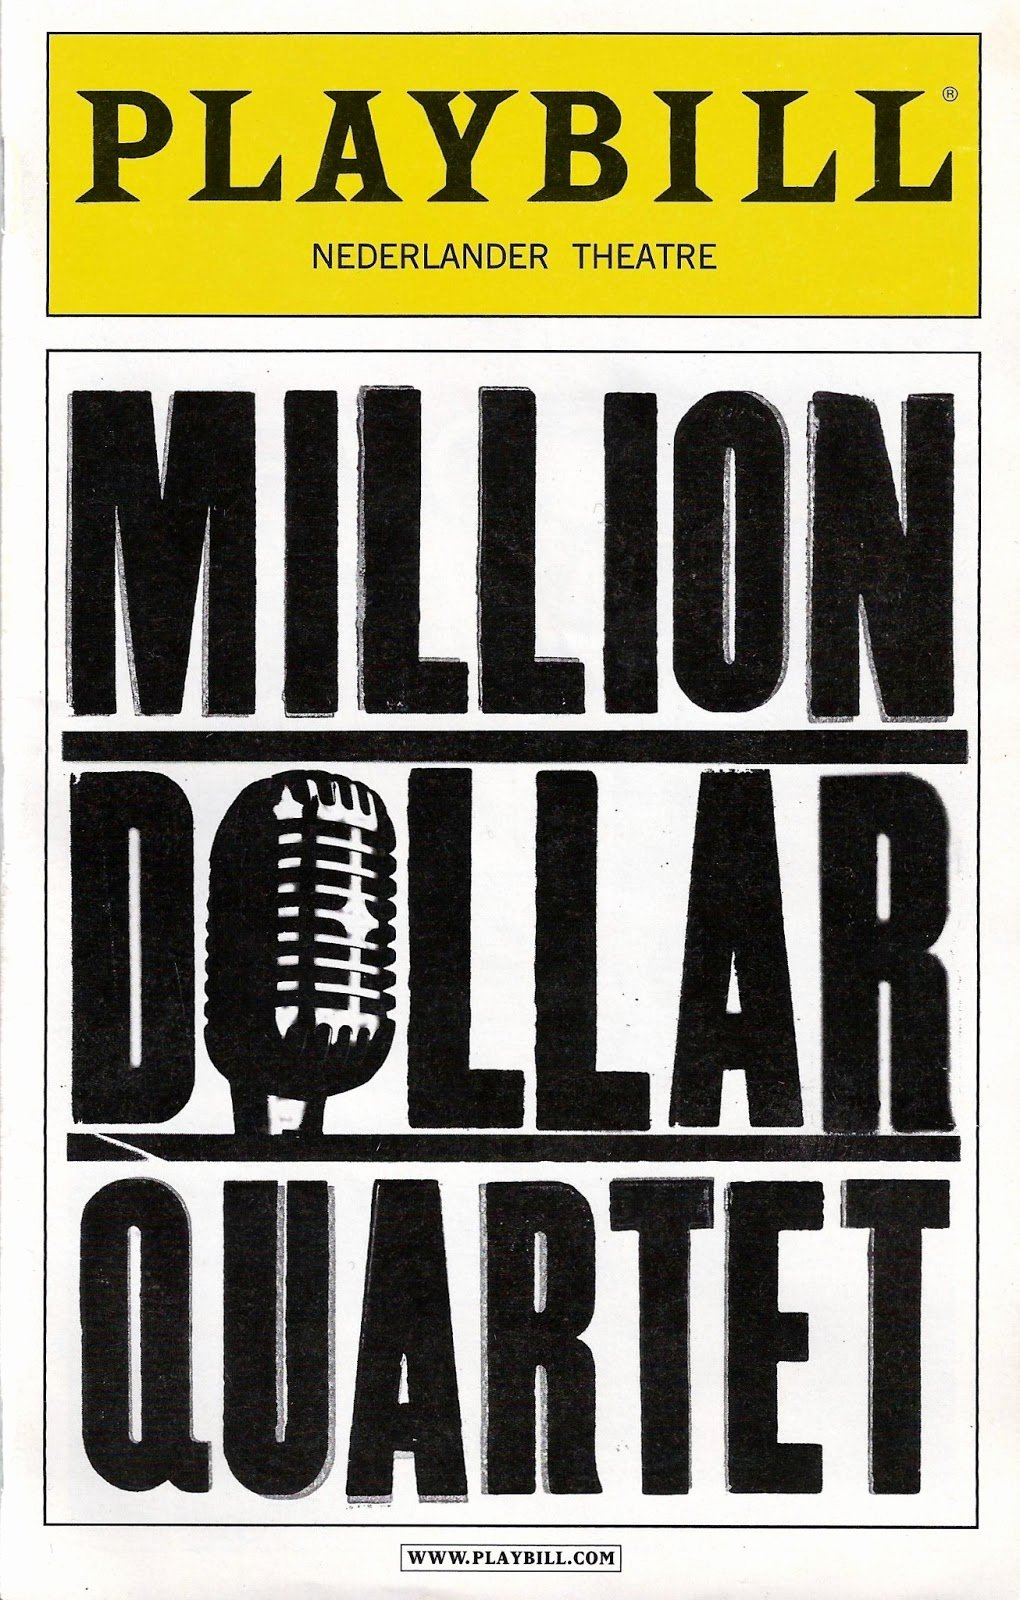 Free Playbill Template Best Of Playbill Template In Microsoft Word Sgasd X Fc2